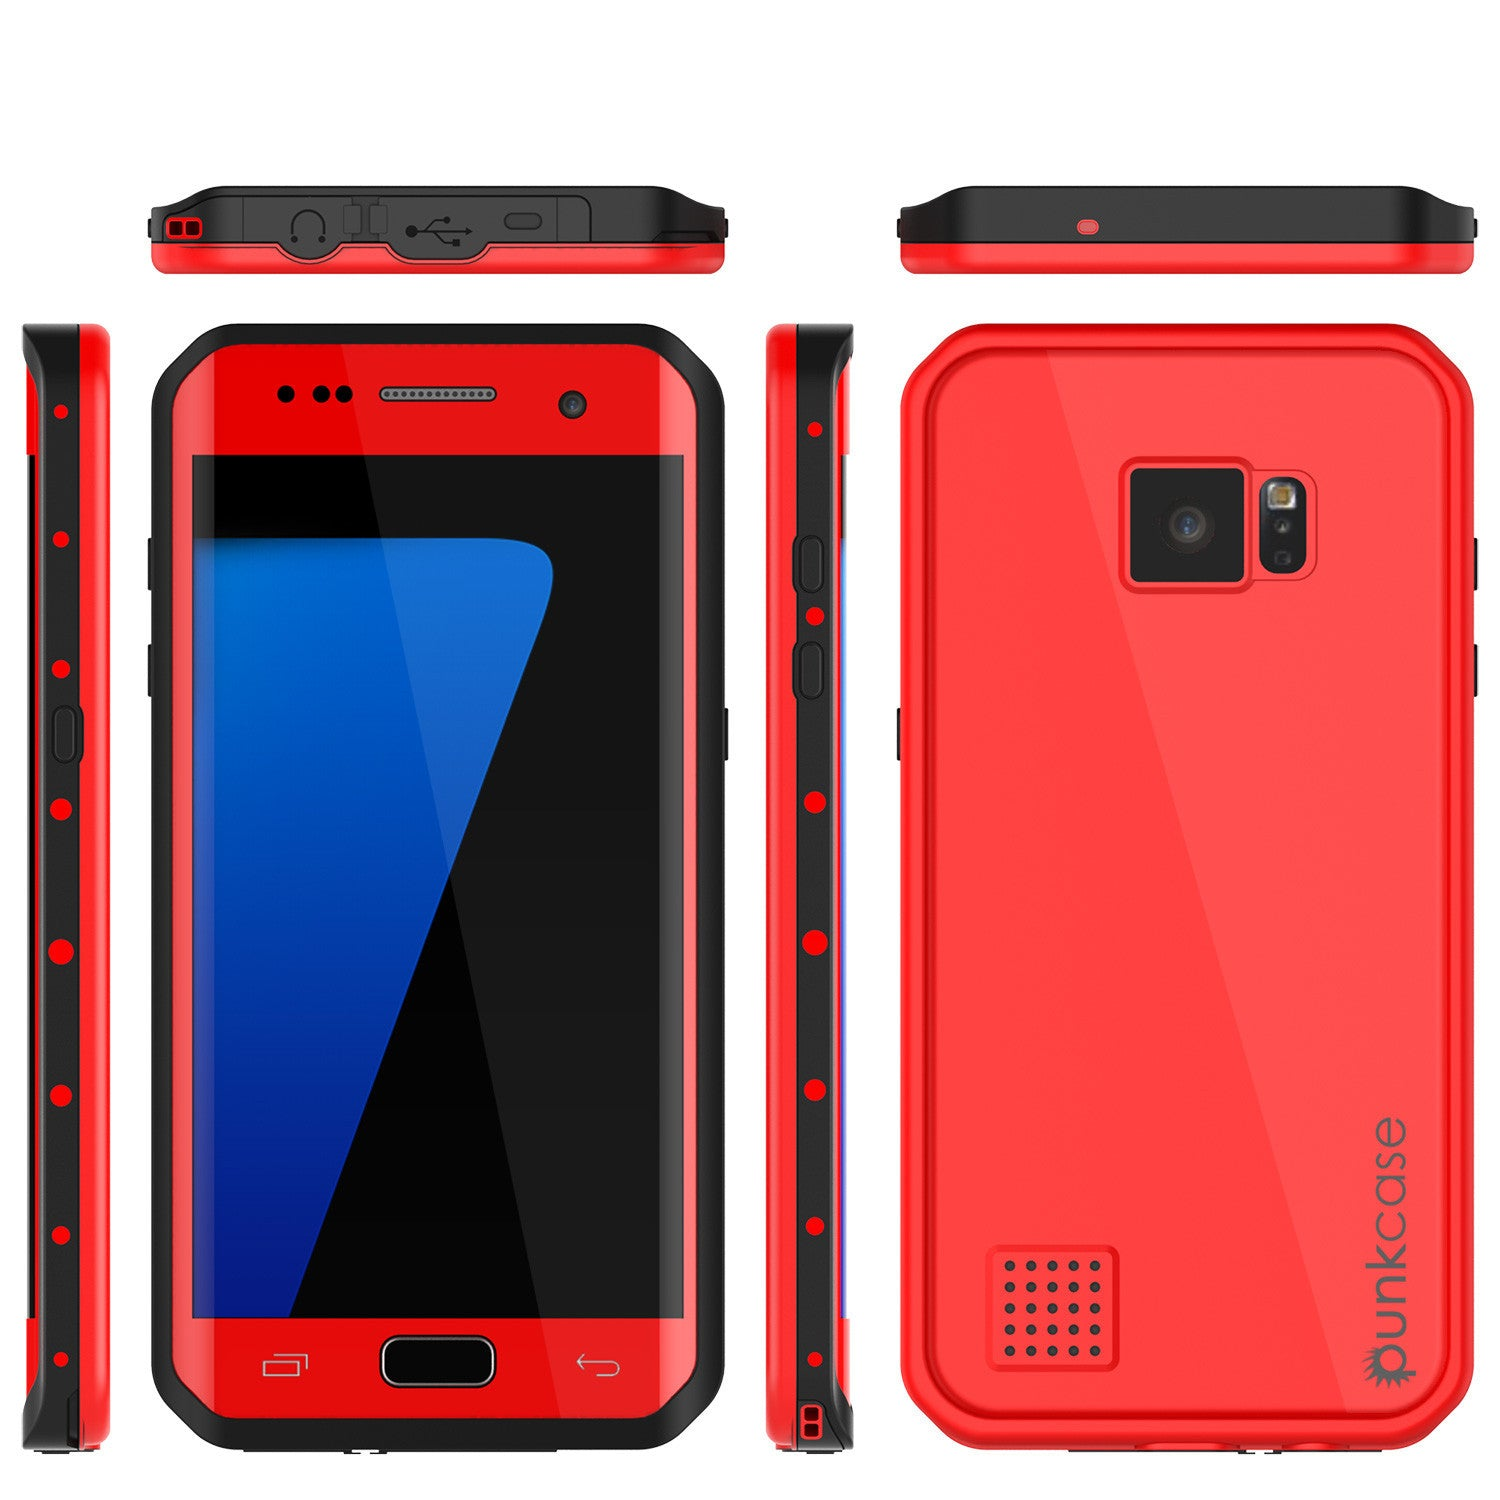 PUNKCASE - Studstar Series Snowproof Case for Galaxy S7 Edge | Red